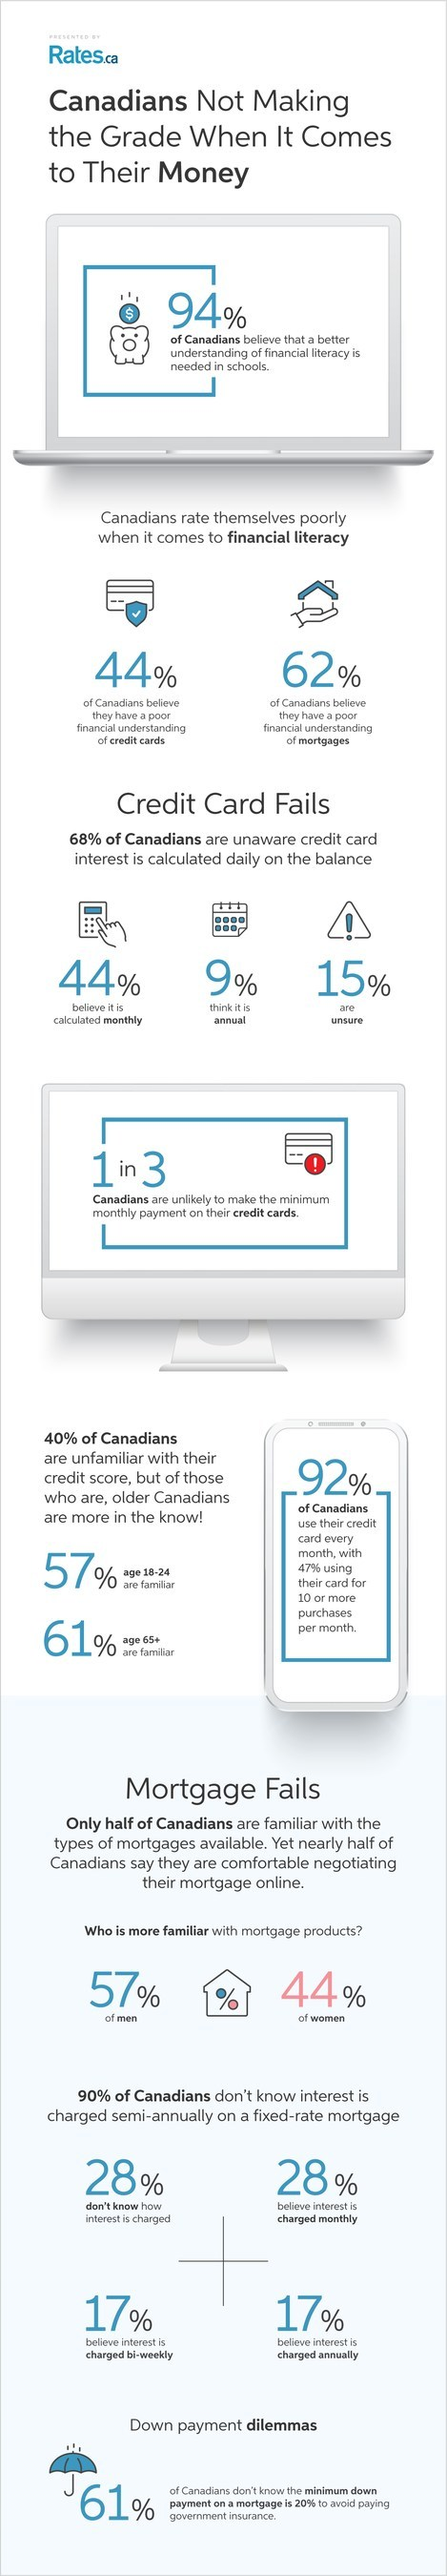 Rates.ca Financial Literacy survey results infographic